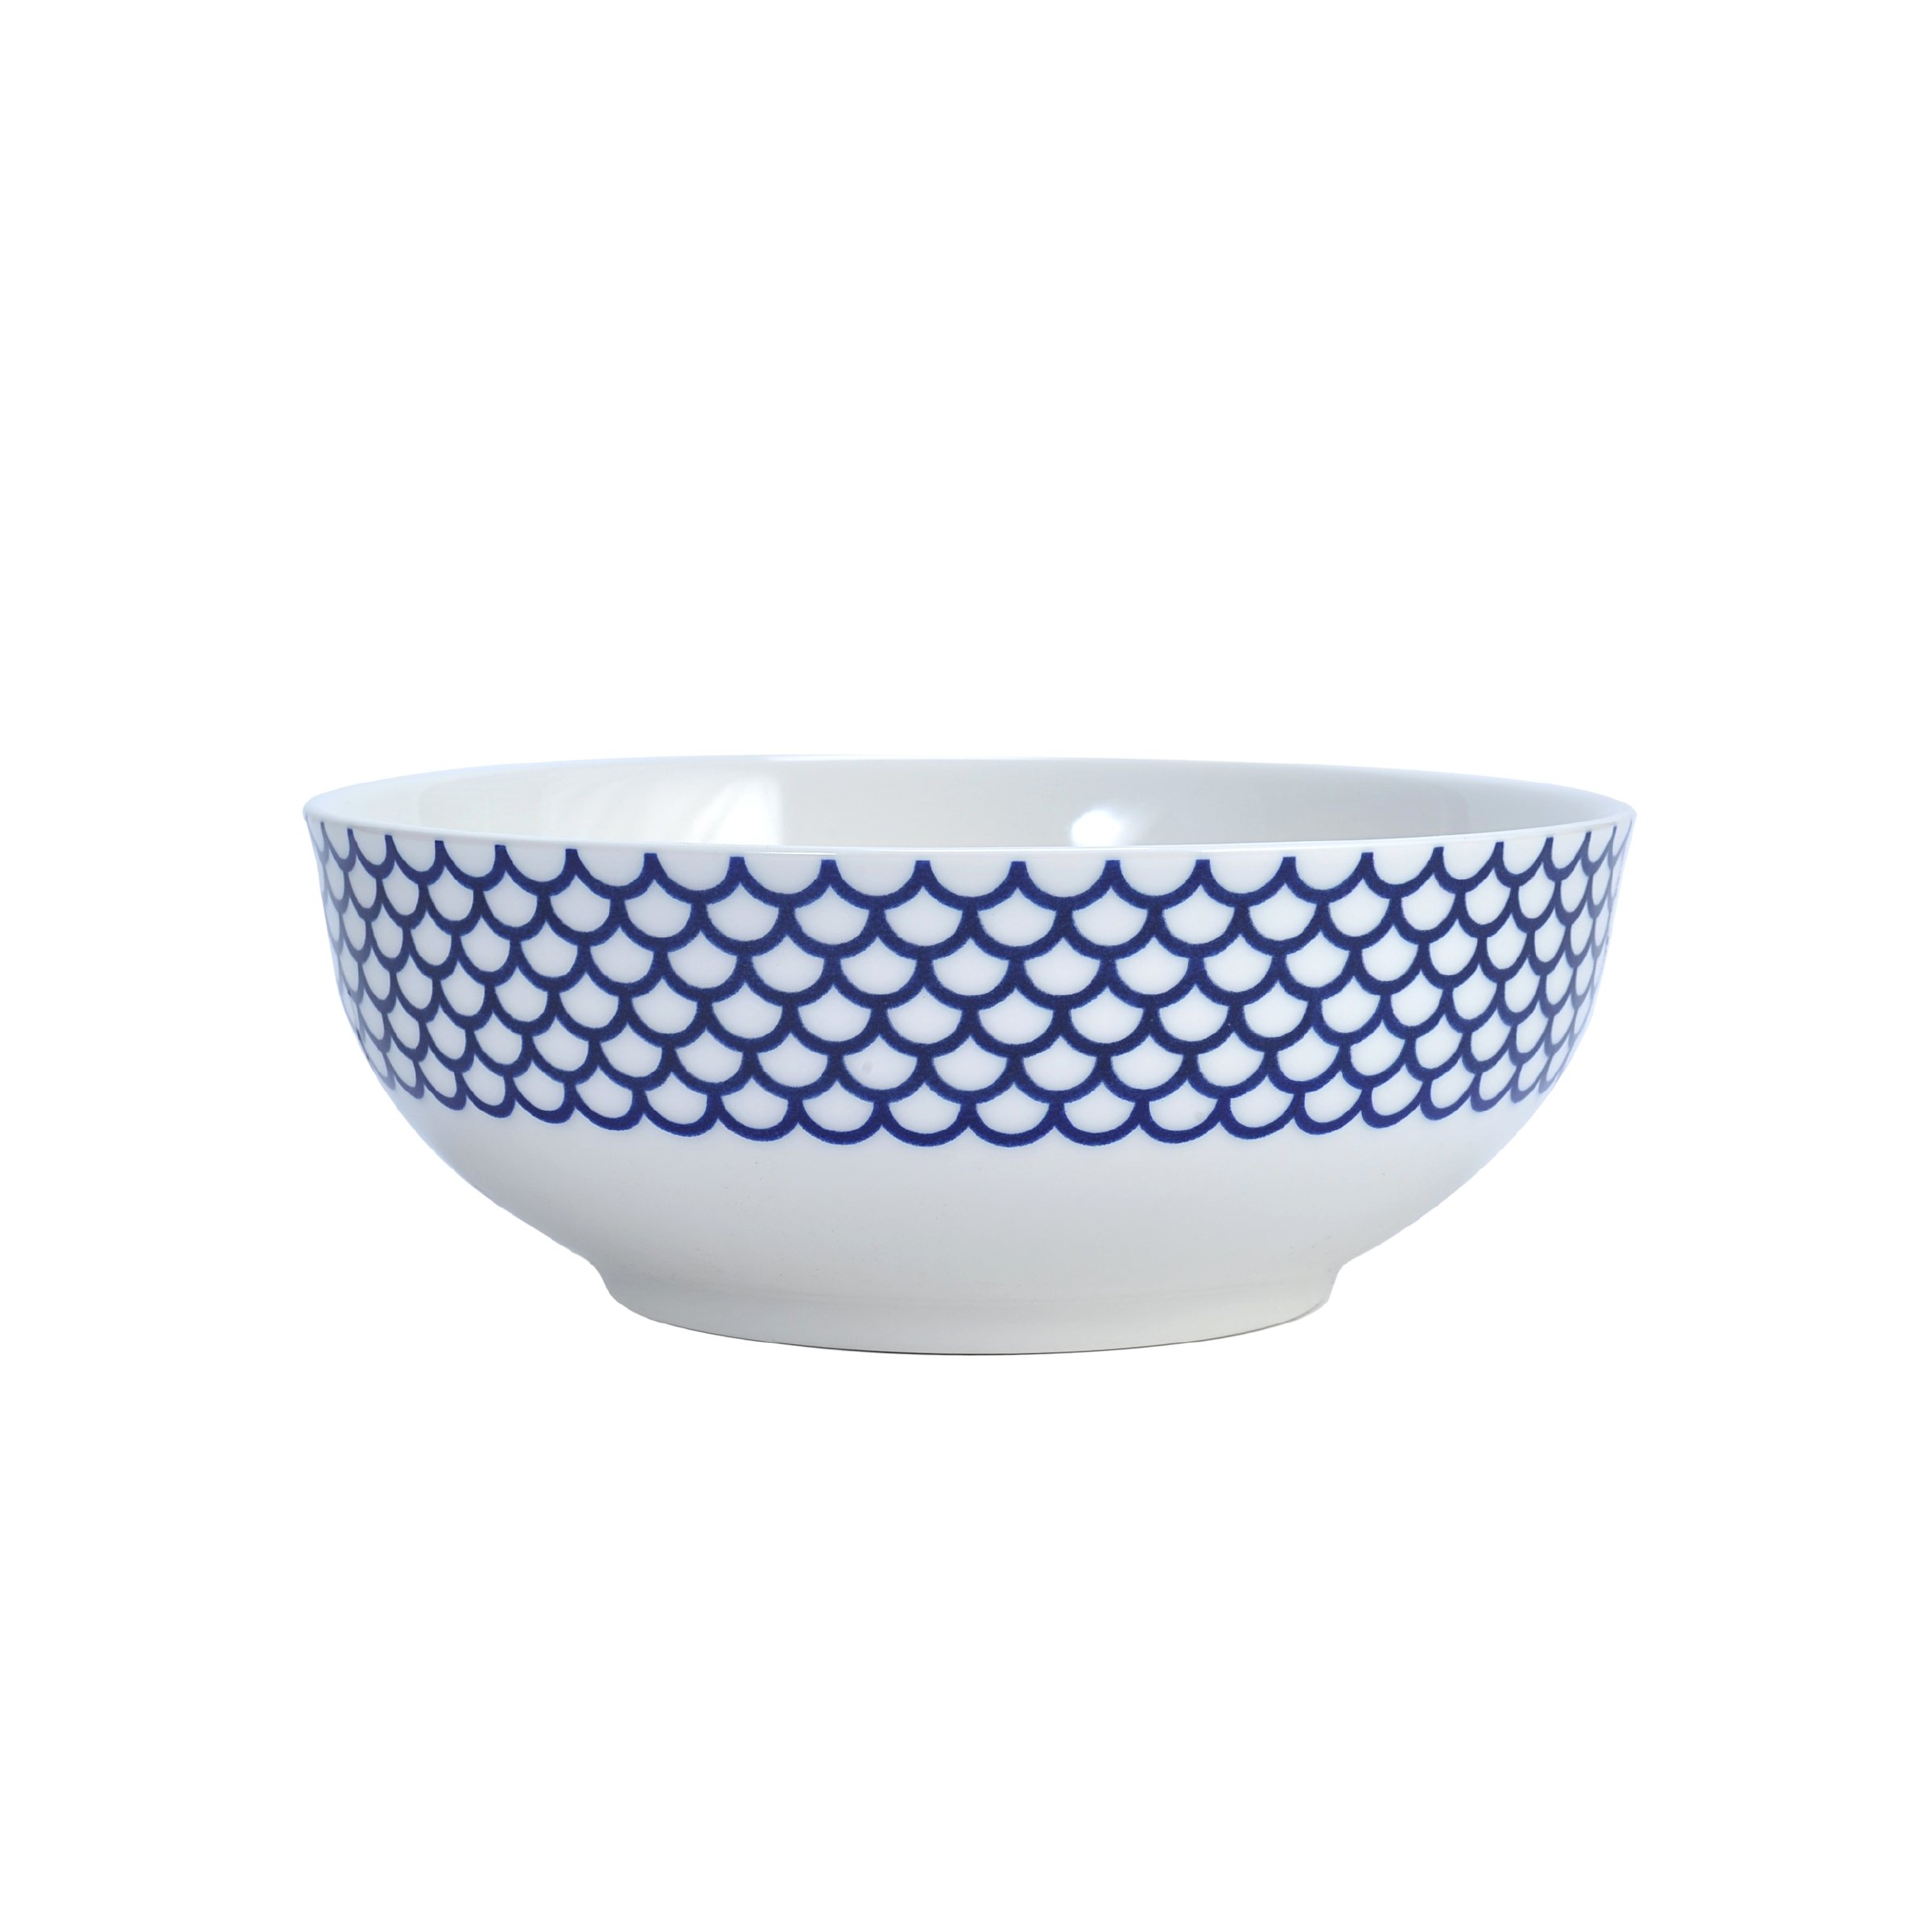 Mikasa Lavina White Vegetable Bowl, 9.5-Inch